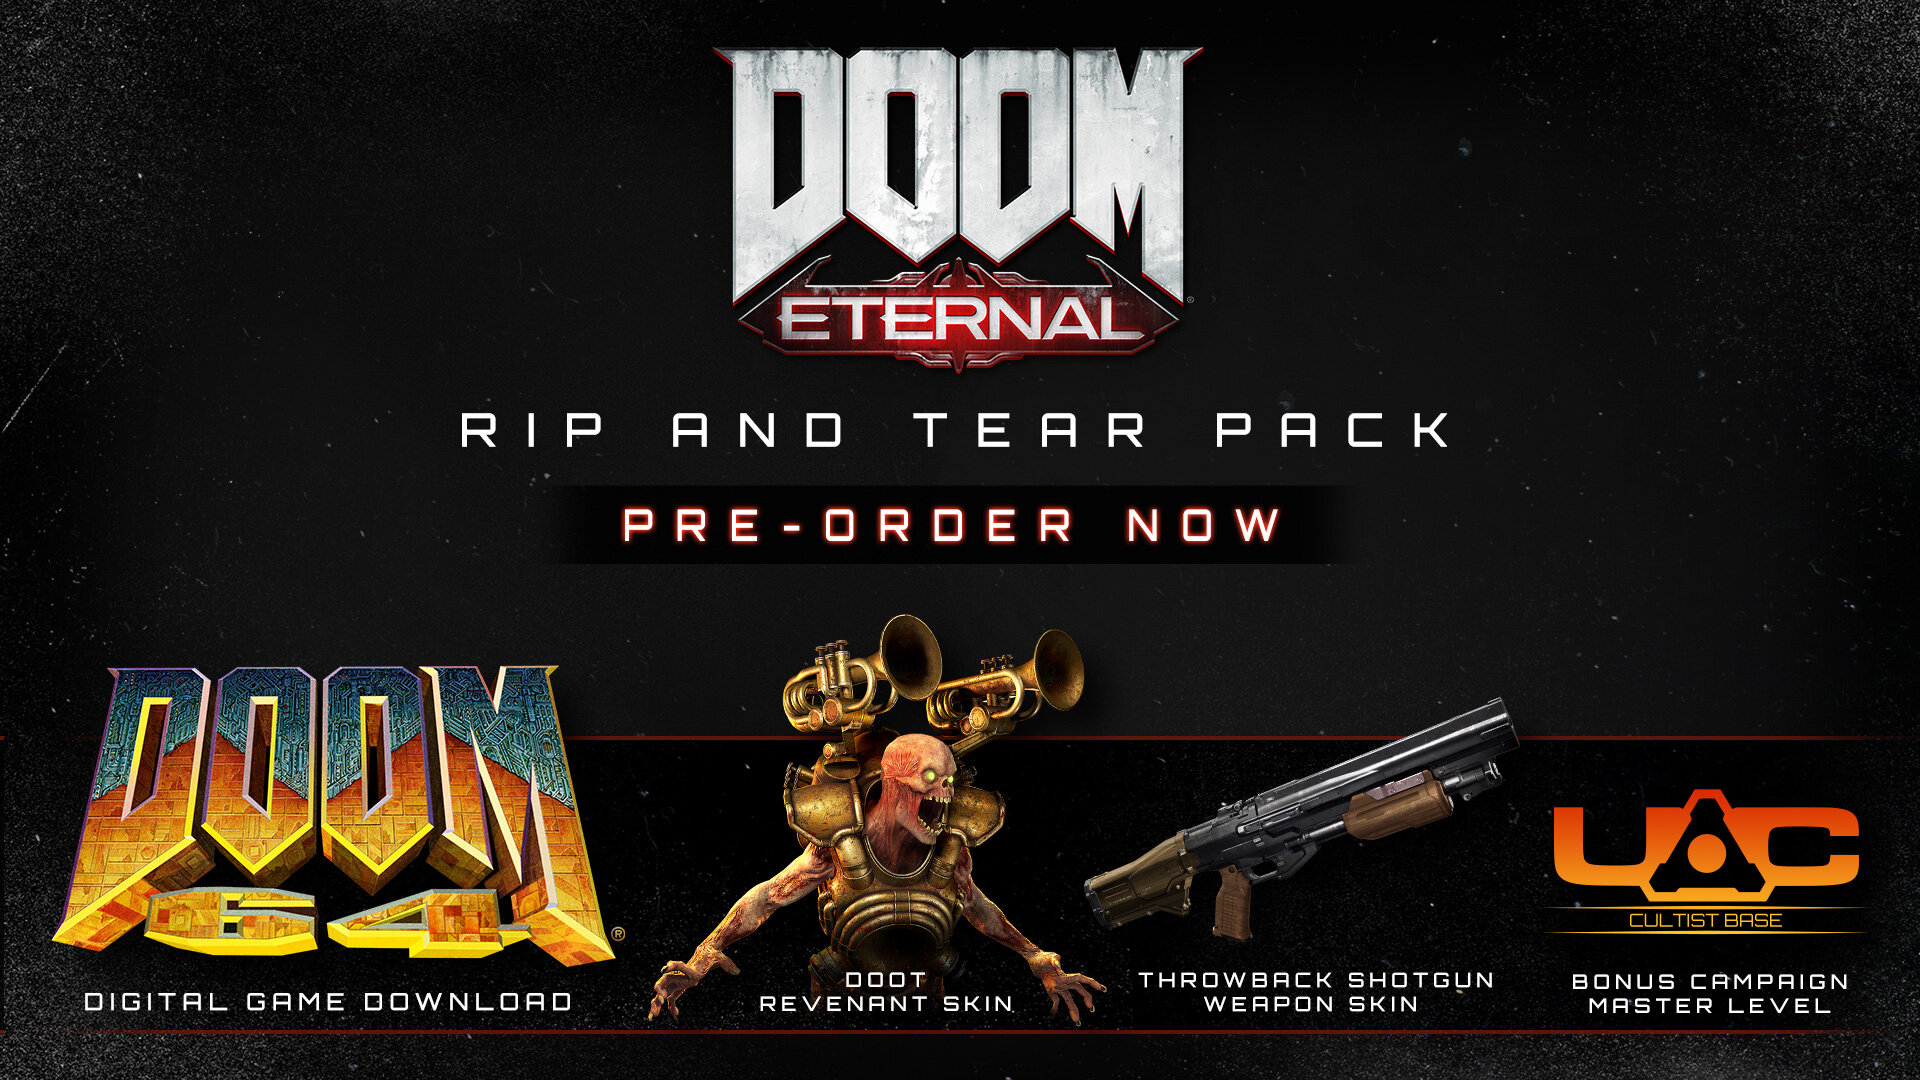 DOOM-Eternal_Preorder_Updated-VanityImage_1920x1080-EN-13[2][3].jpg